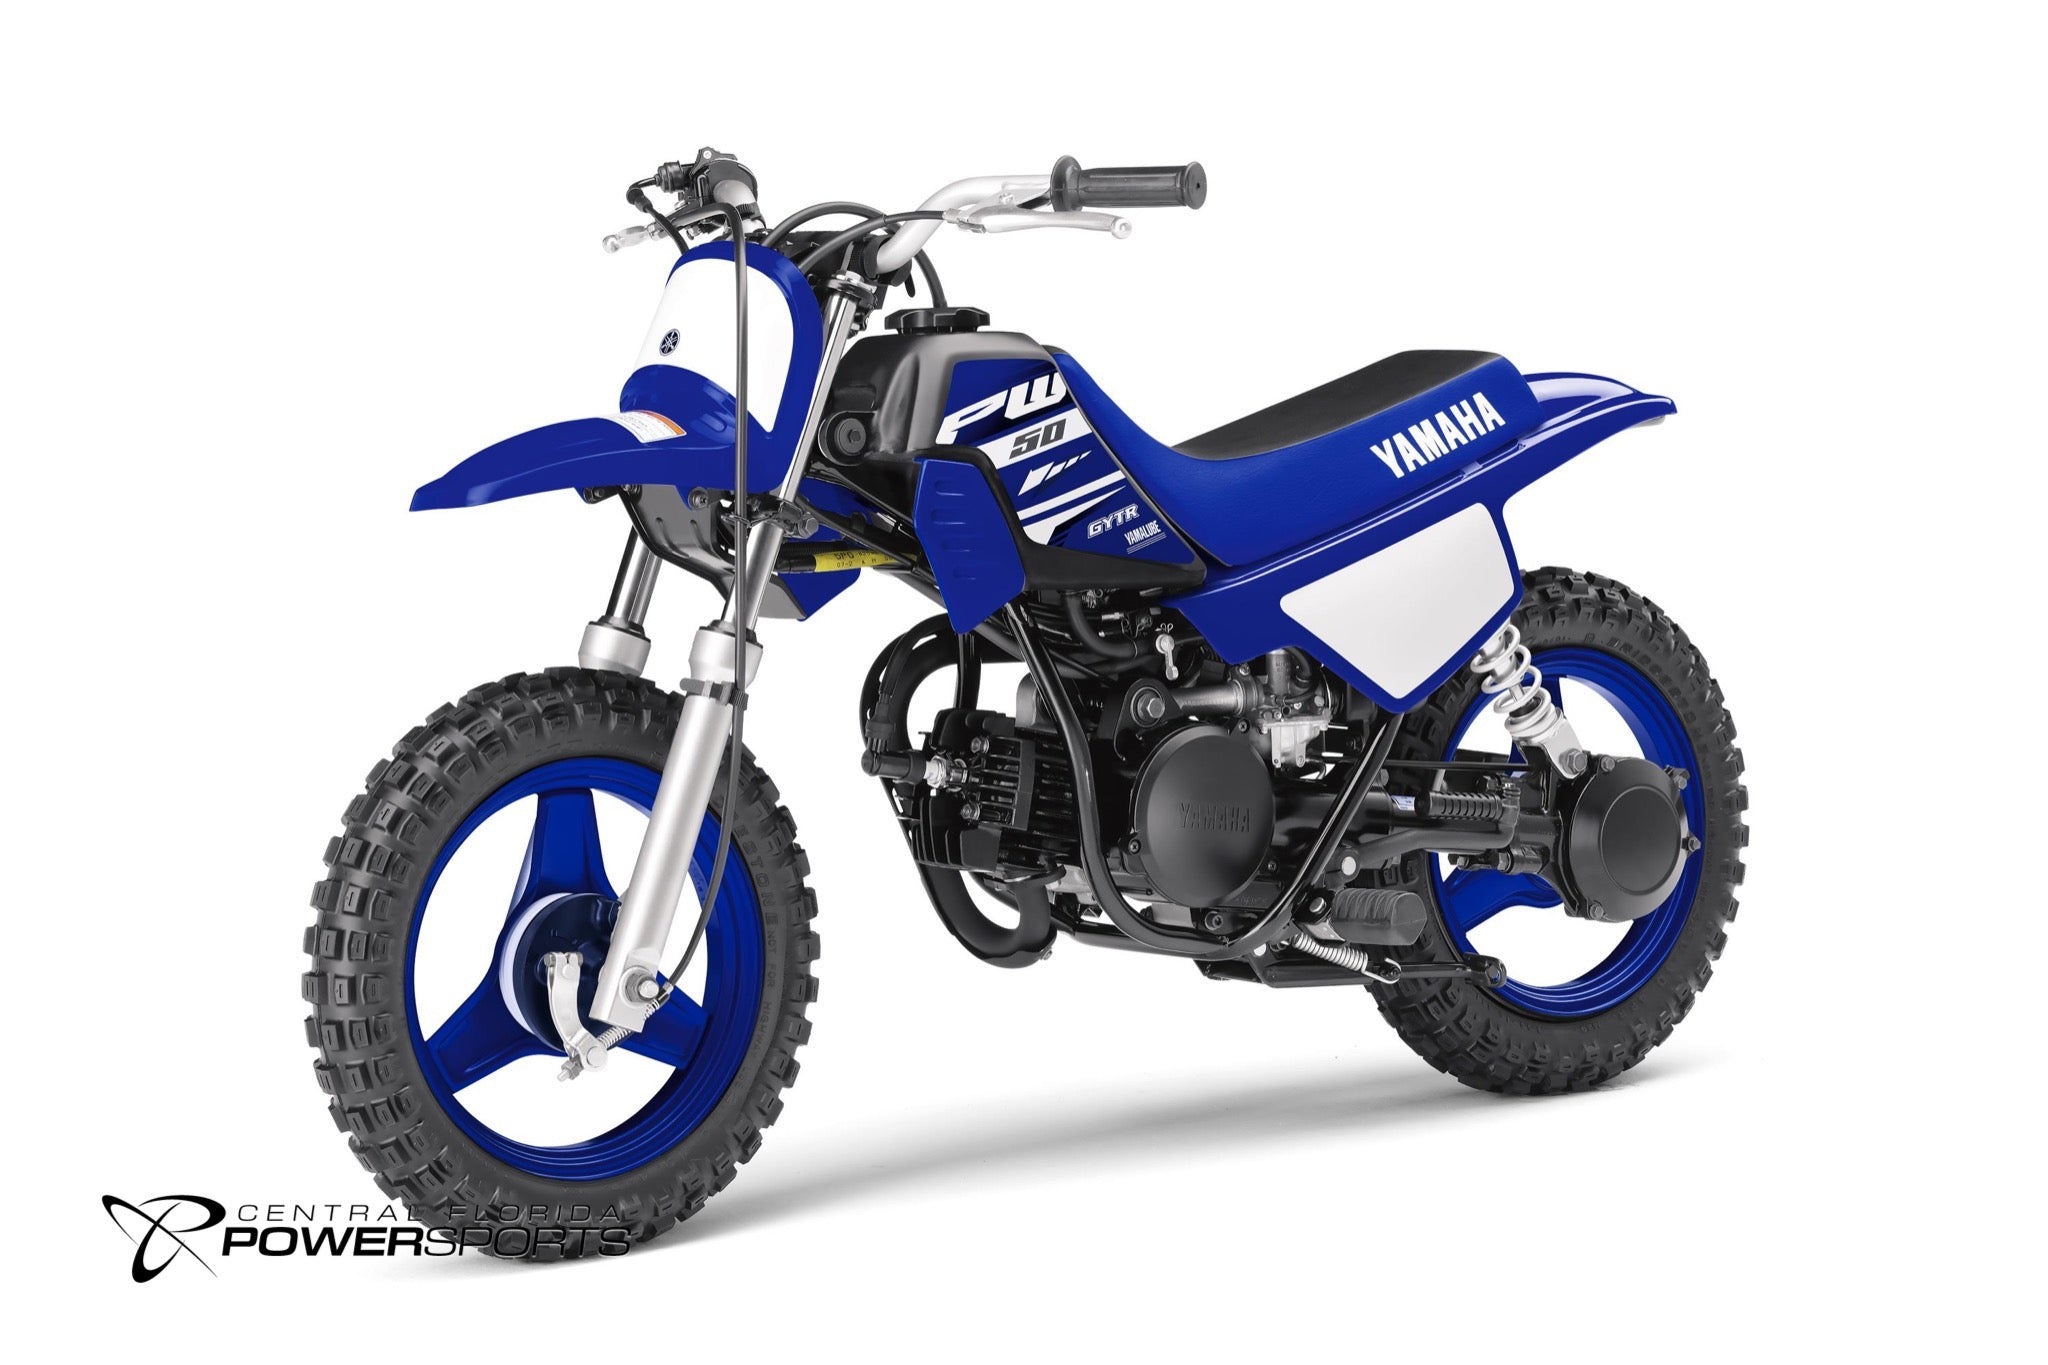 2018 yamaha pw50 mini dirtbike for sale kissimmee central florida powersports. Black Bedroom Furniture Sets. Home Design Ideas